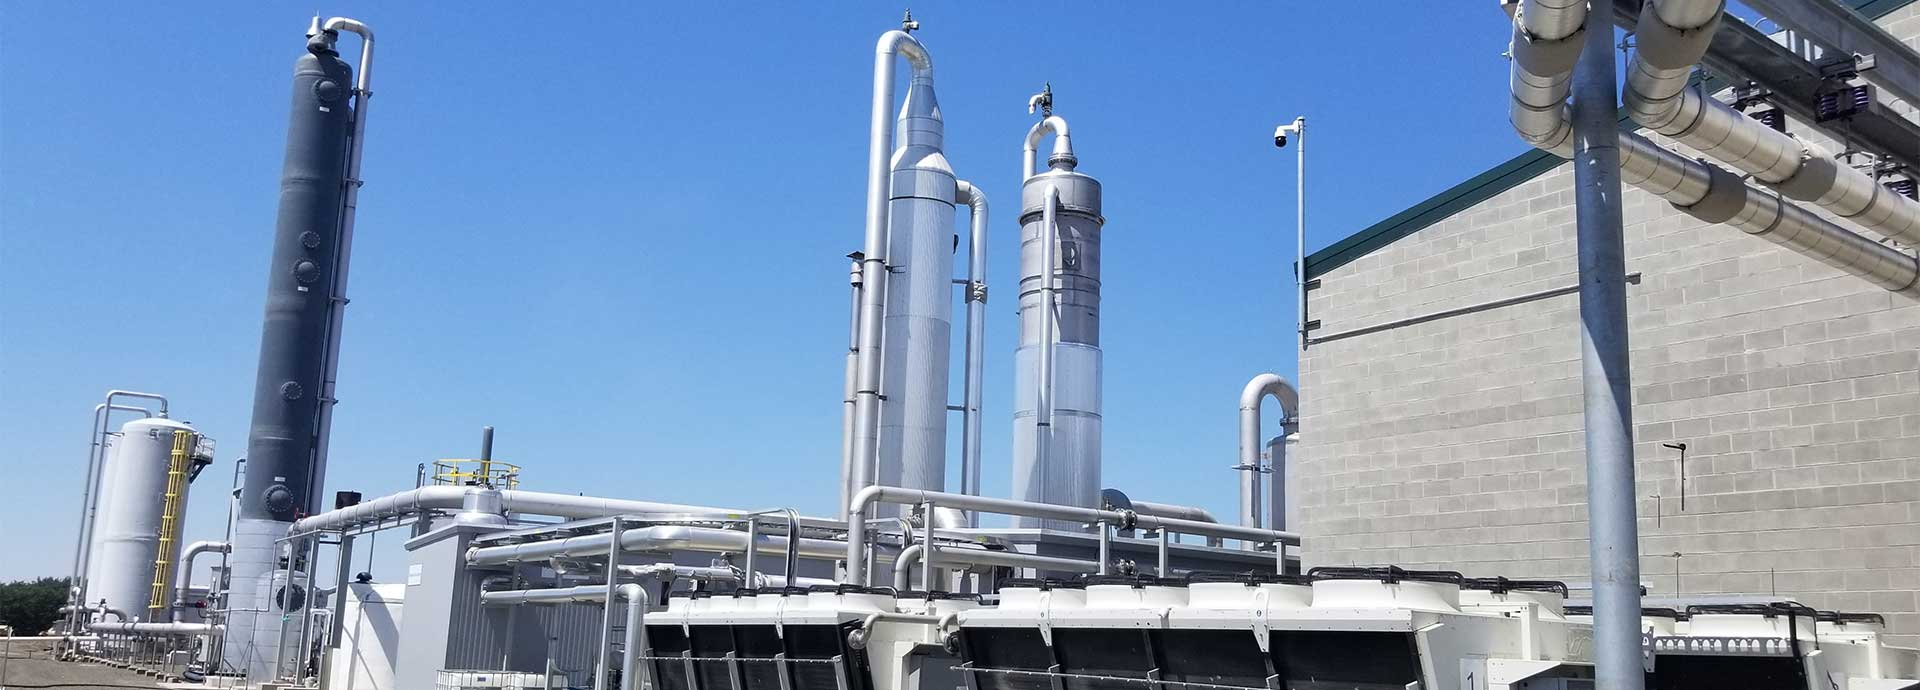 Producing sustainable fuel from animal manure